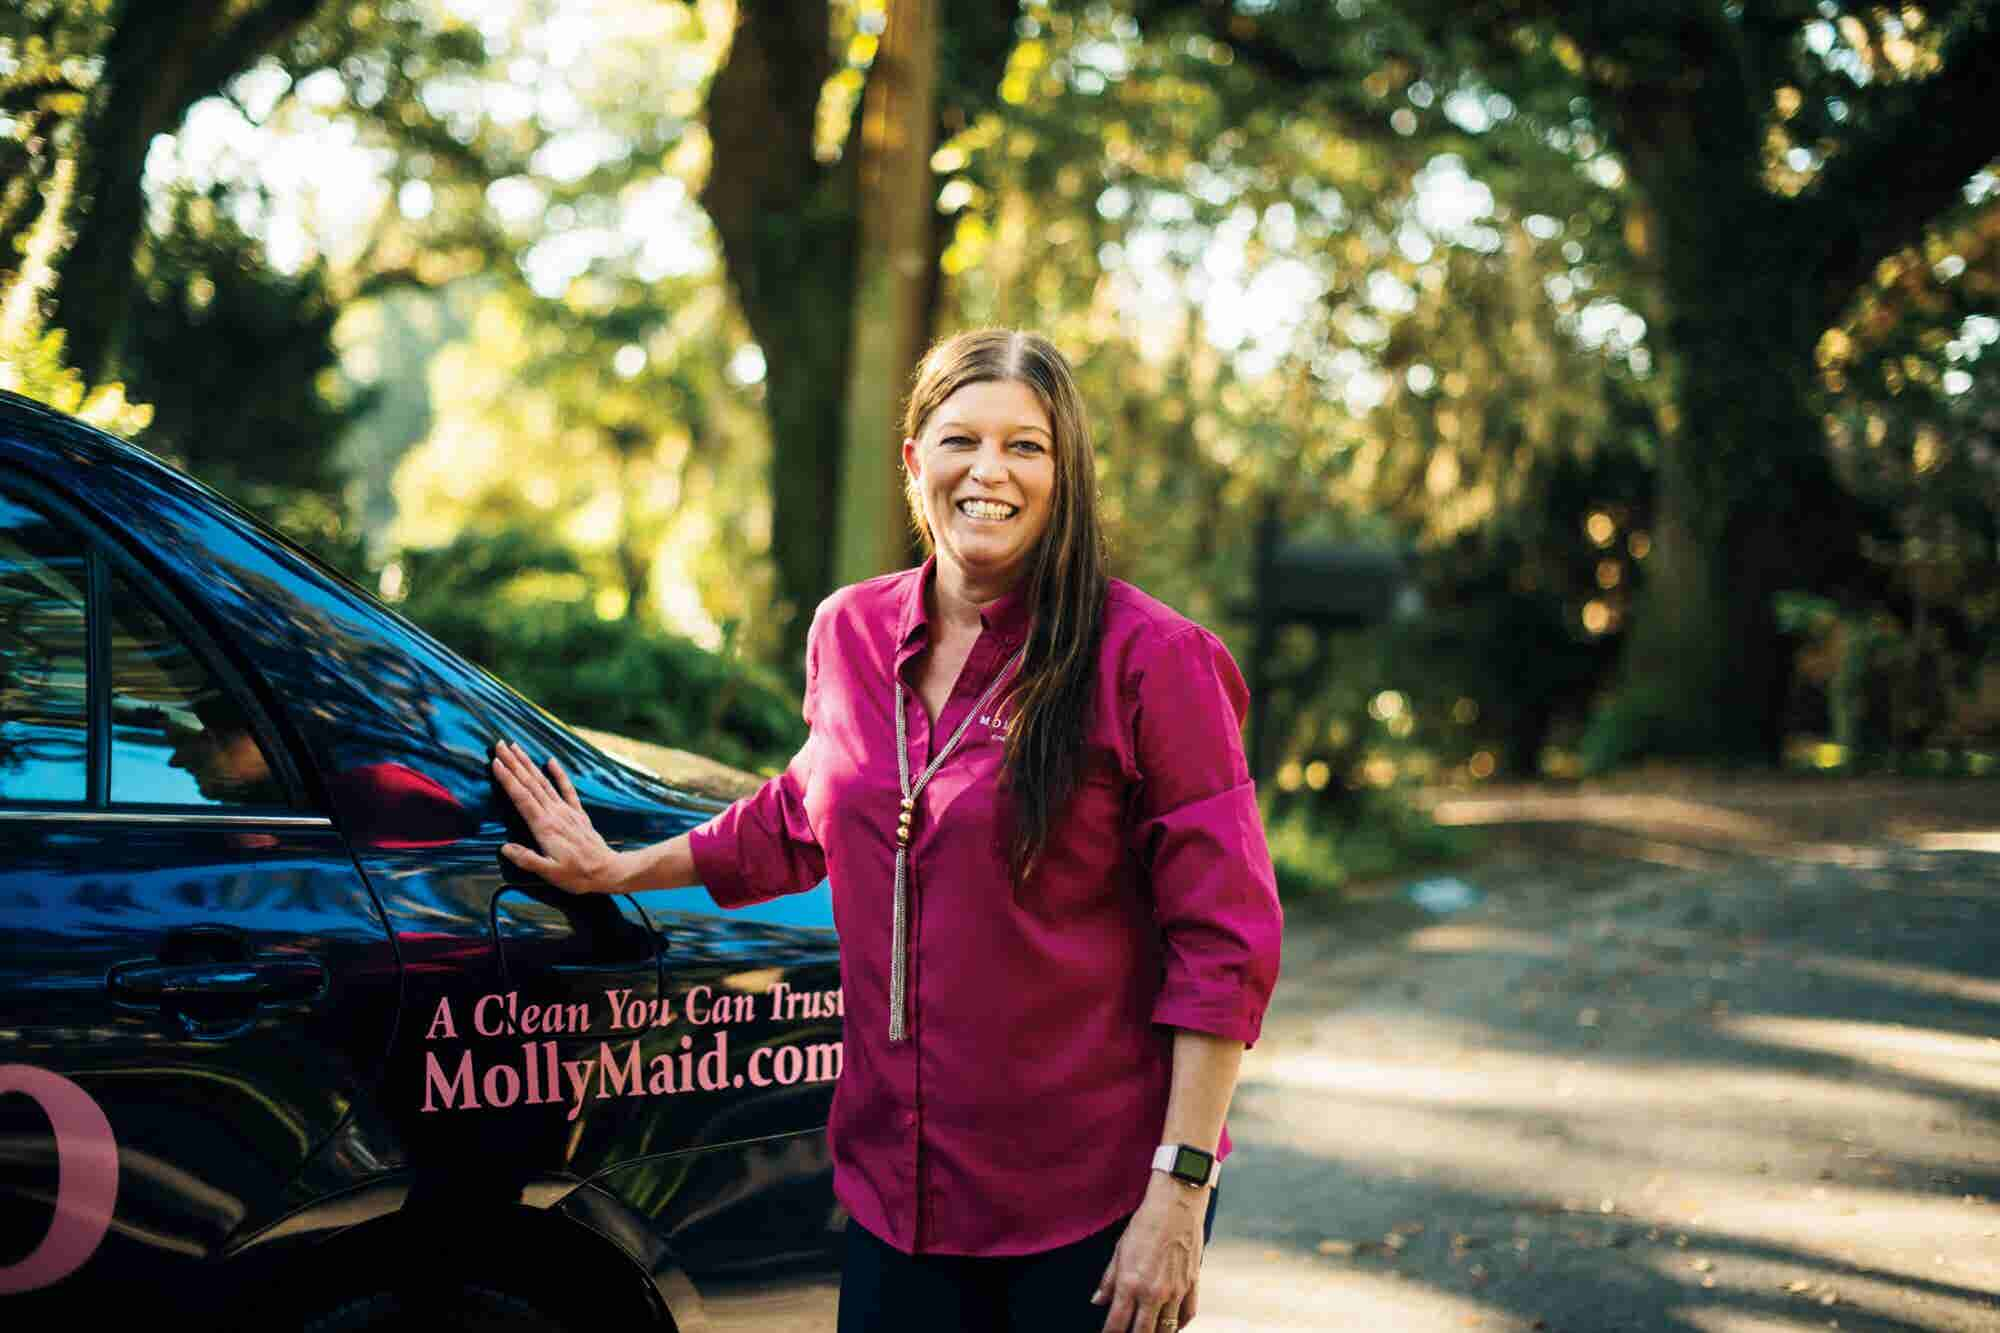 How This Molly Maid Franchisee Built a Million-Dollar Business